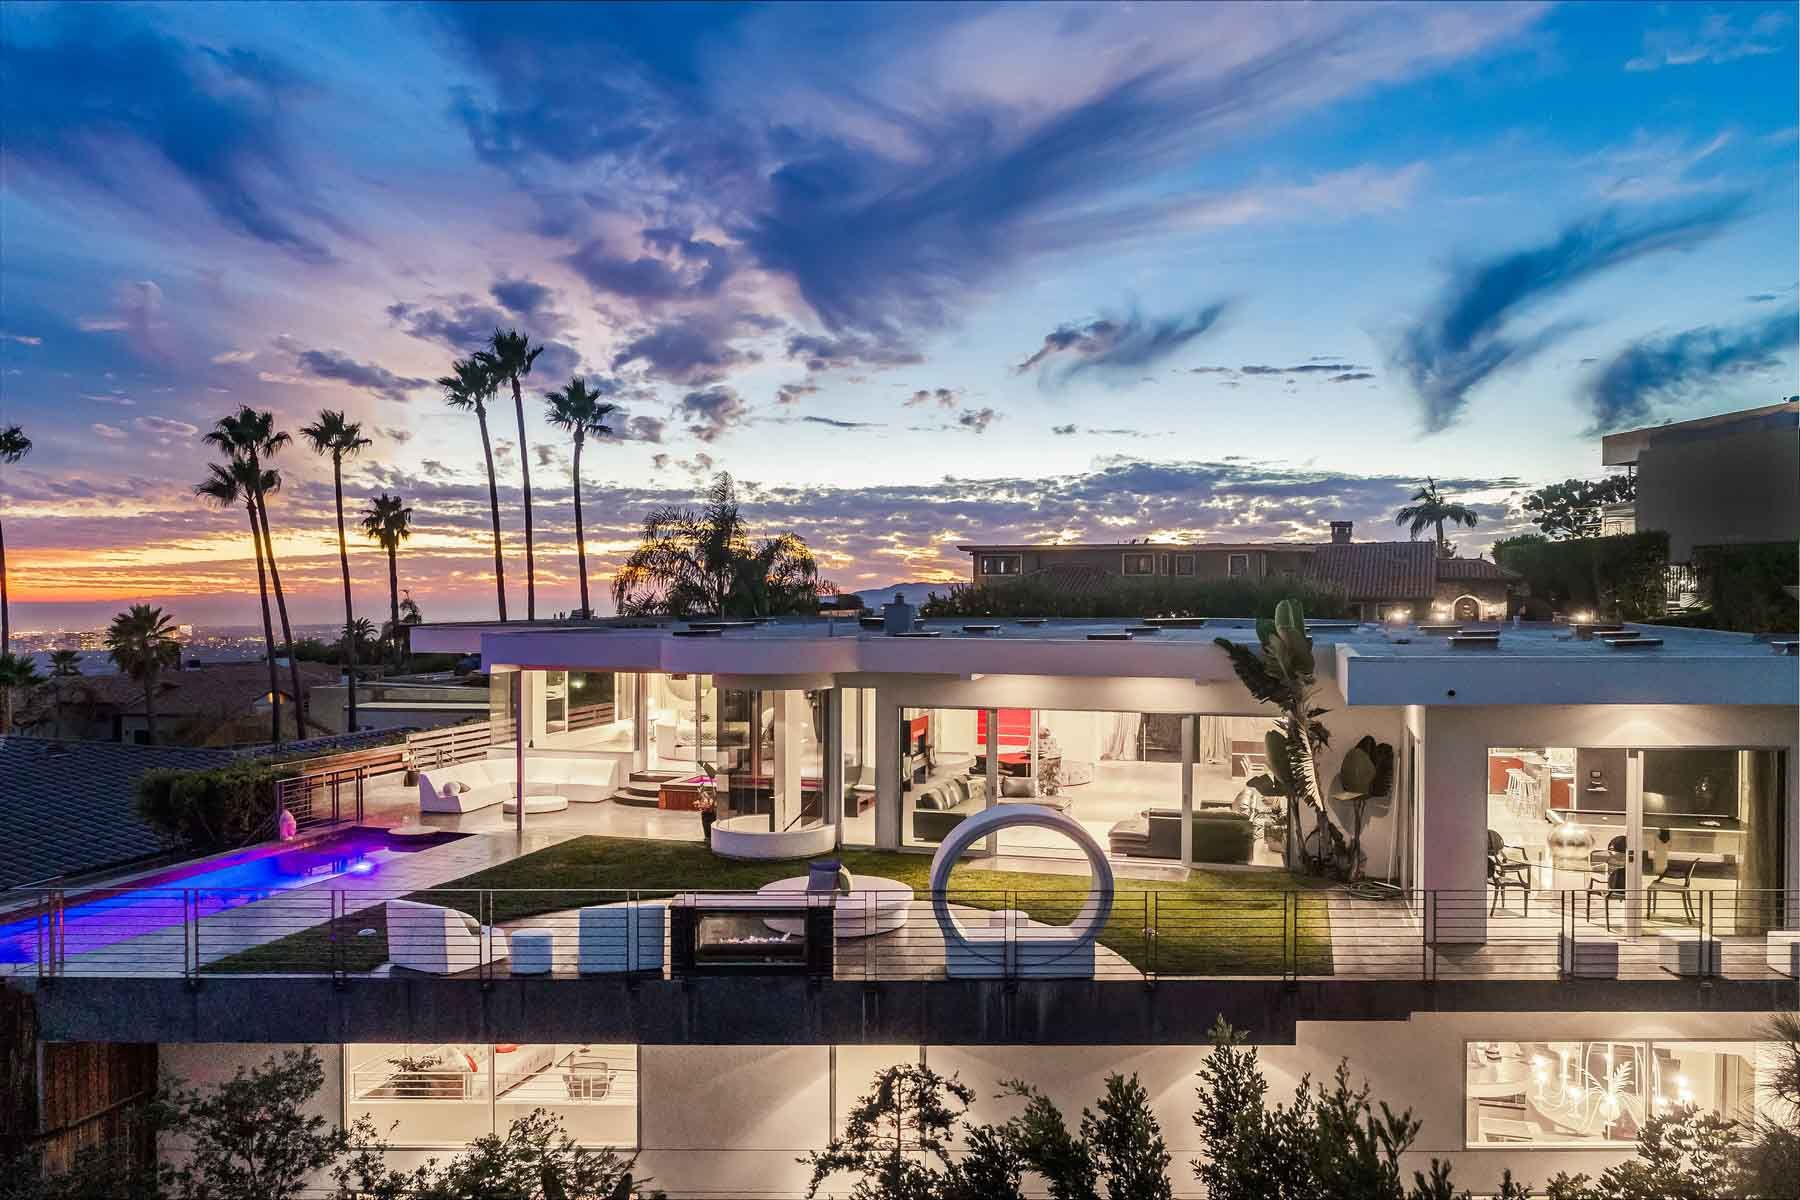 Single Family Homes for Sale at Doheny Estates Architectural Showplace 9353 Nightingale Drive Los Angeles, California 90069 United States